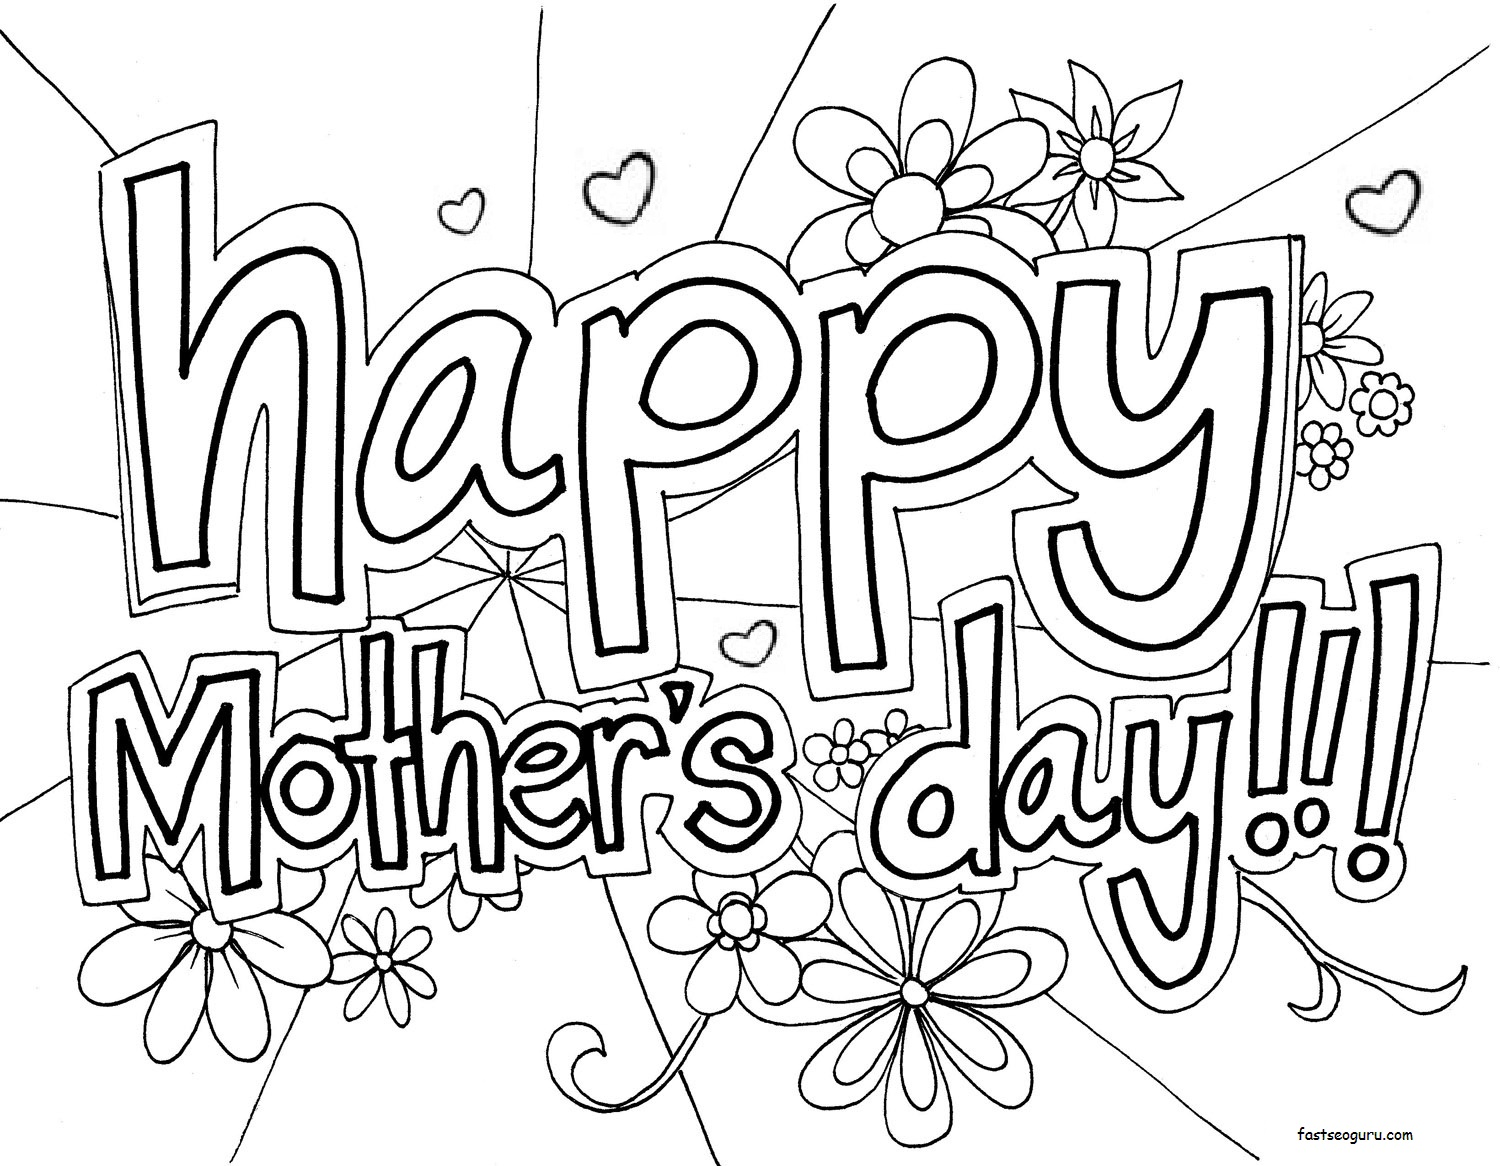 Mothers Day Cards Free Download